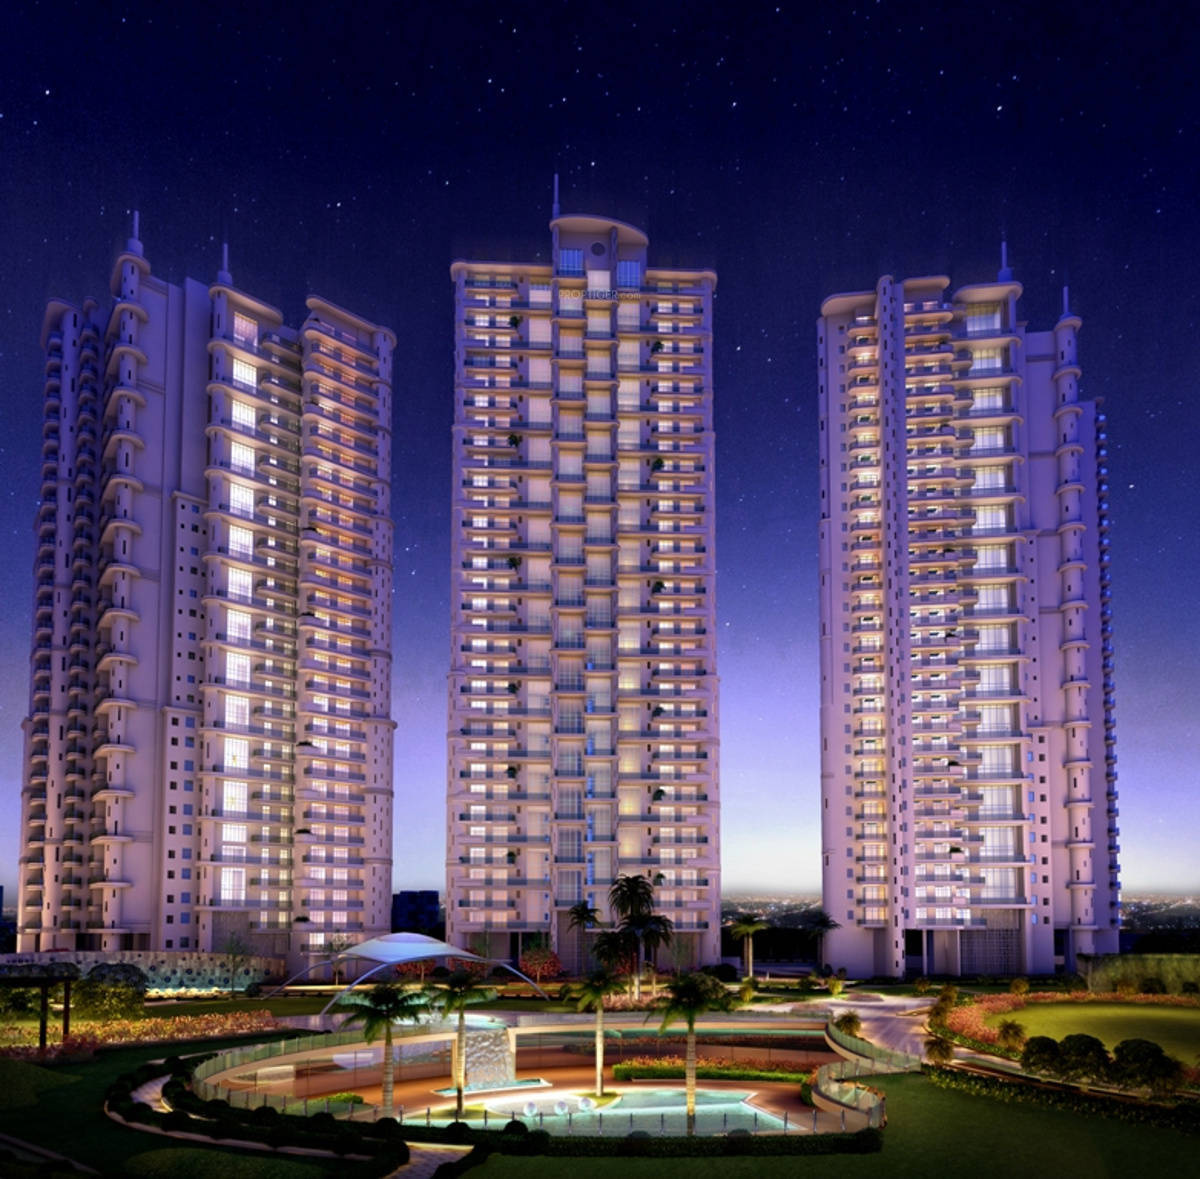 4425 sq ft 4BHK 4BHK+4T (4,425 sq ft) Property By Ajmani Estates In Mezzaria, Sector 78